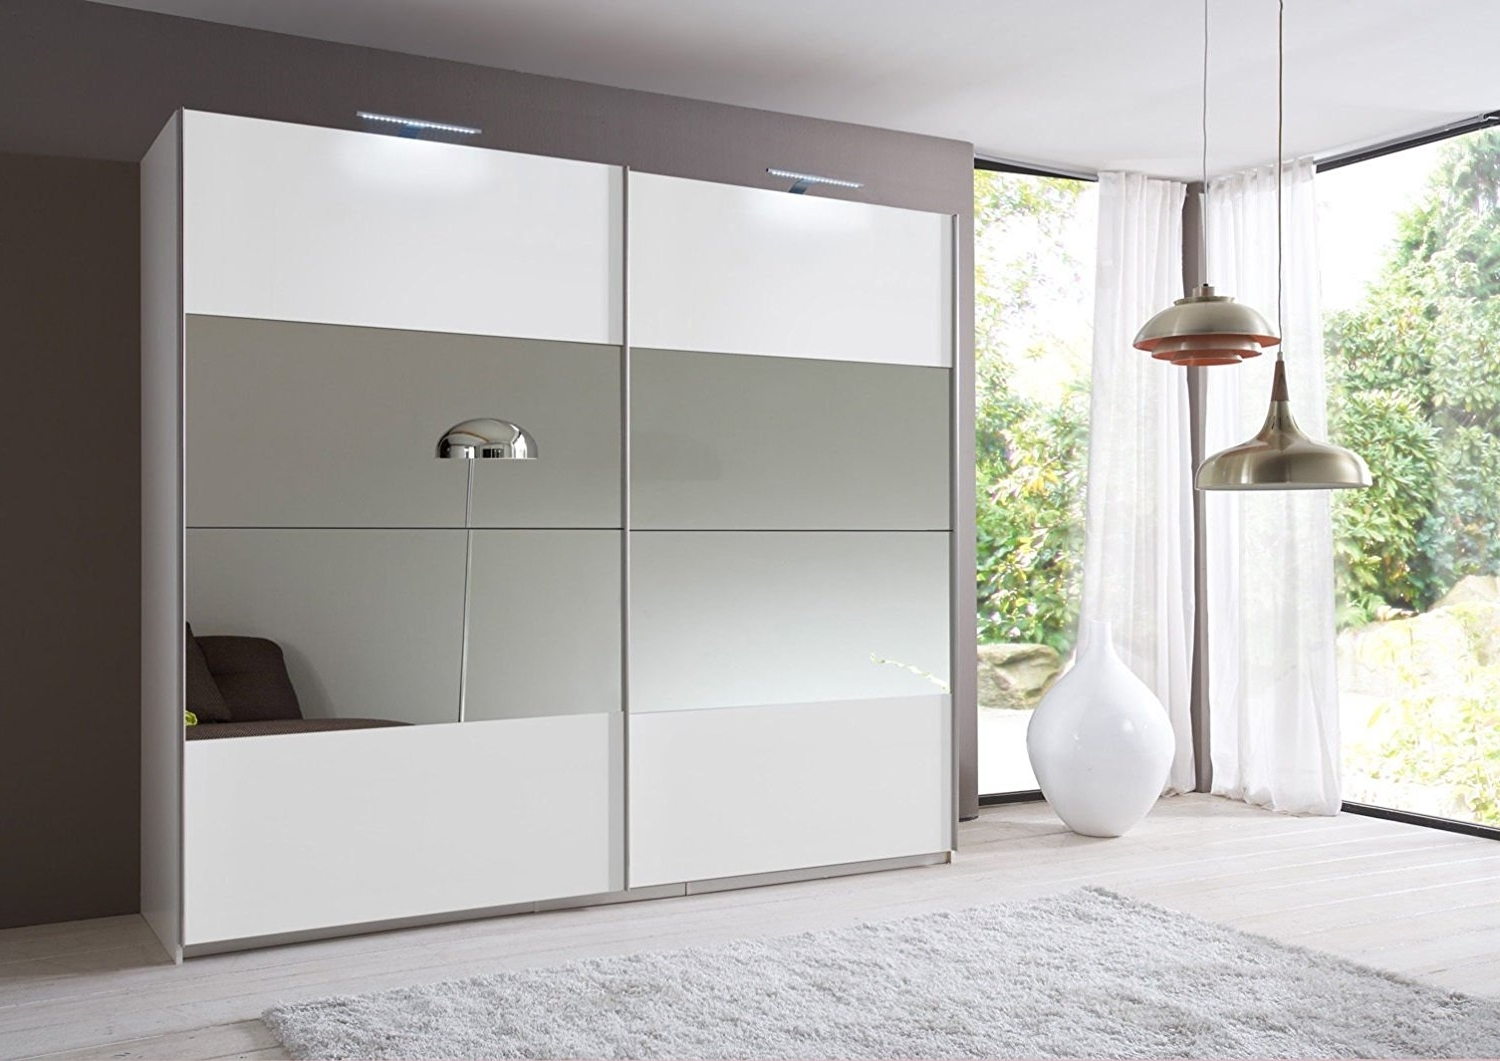 Slumberhaus Eleganz German Made 270Cm Sliding Mirror Door Wardrobe Regarding Most Recent Full Mirrored Wardrobes (View 13 of 15)